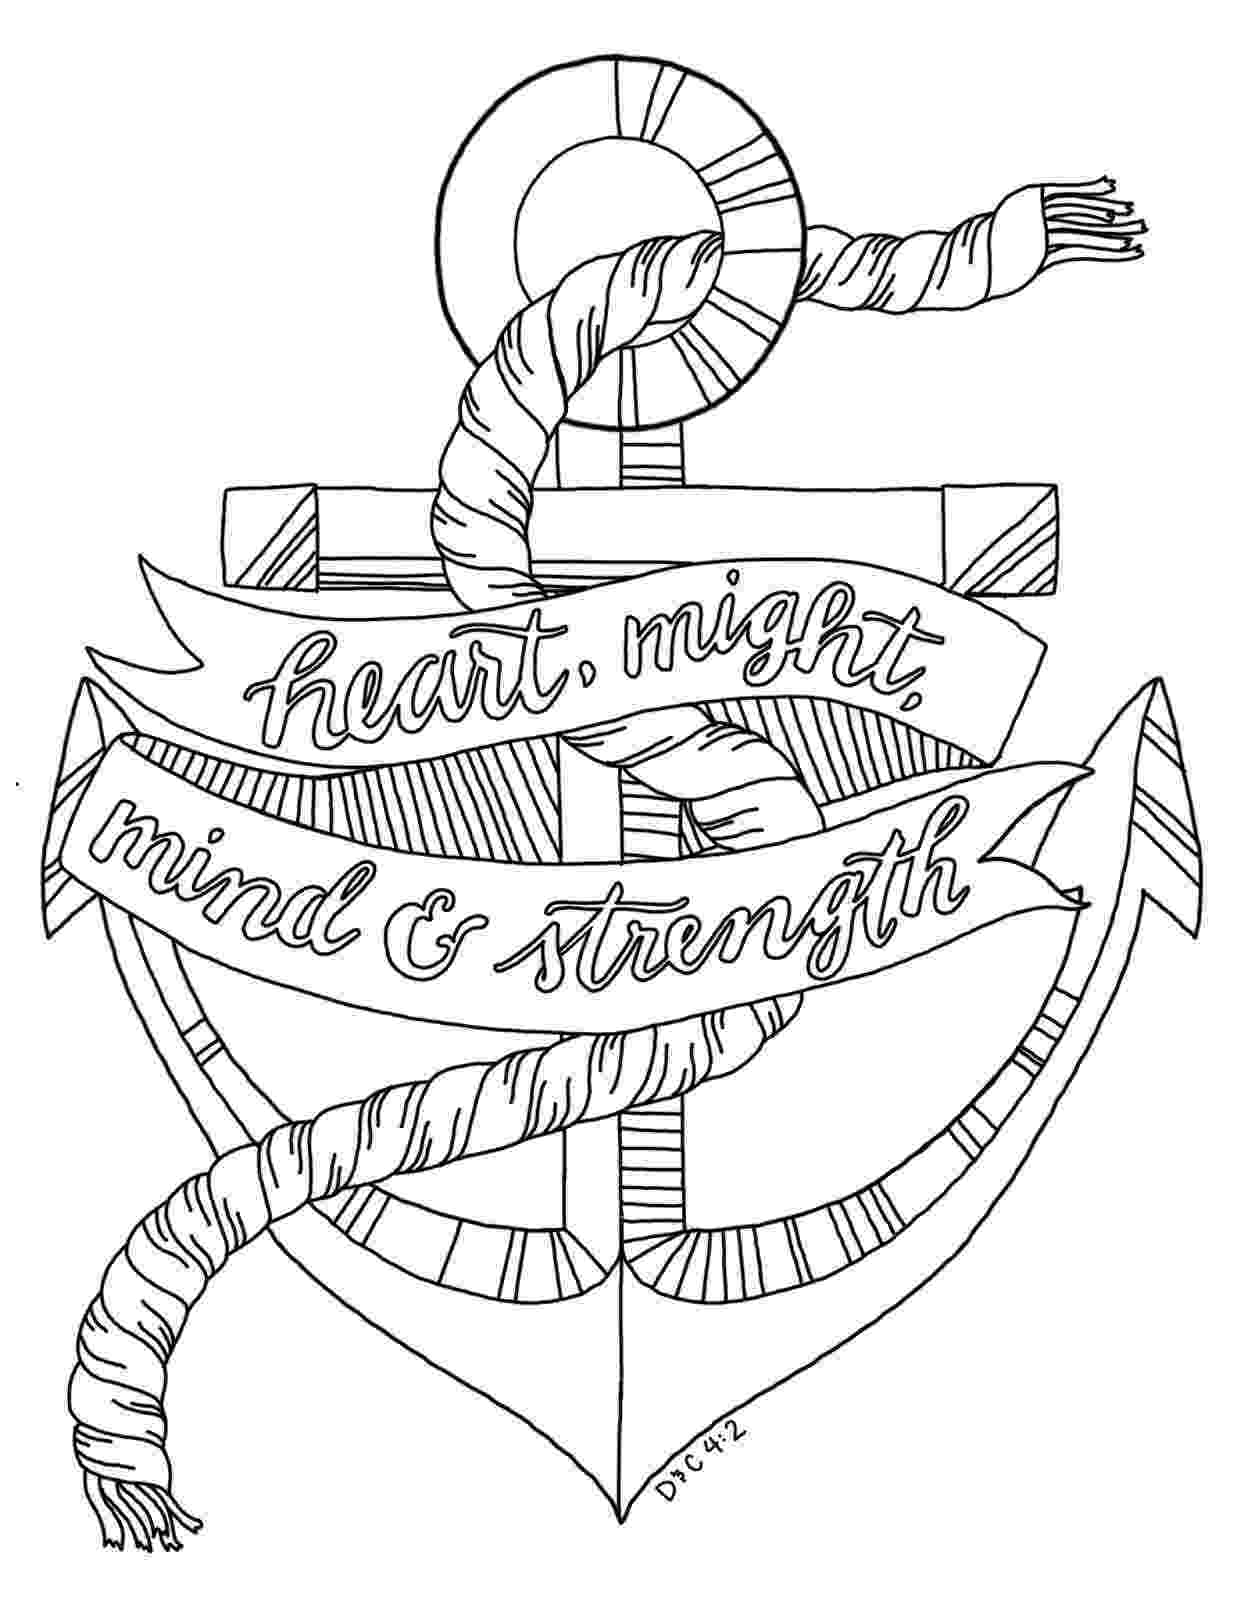 pictures of anchors to color anchor coloring pages getcoloringpagescom pictures of to color anchors